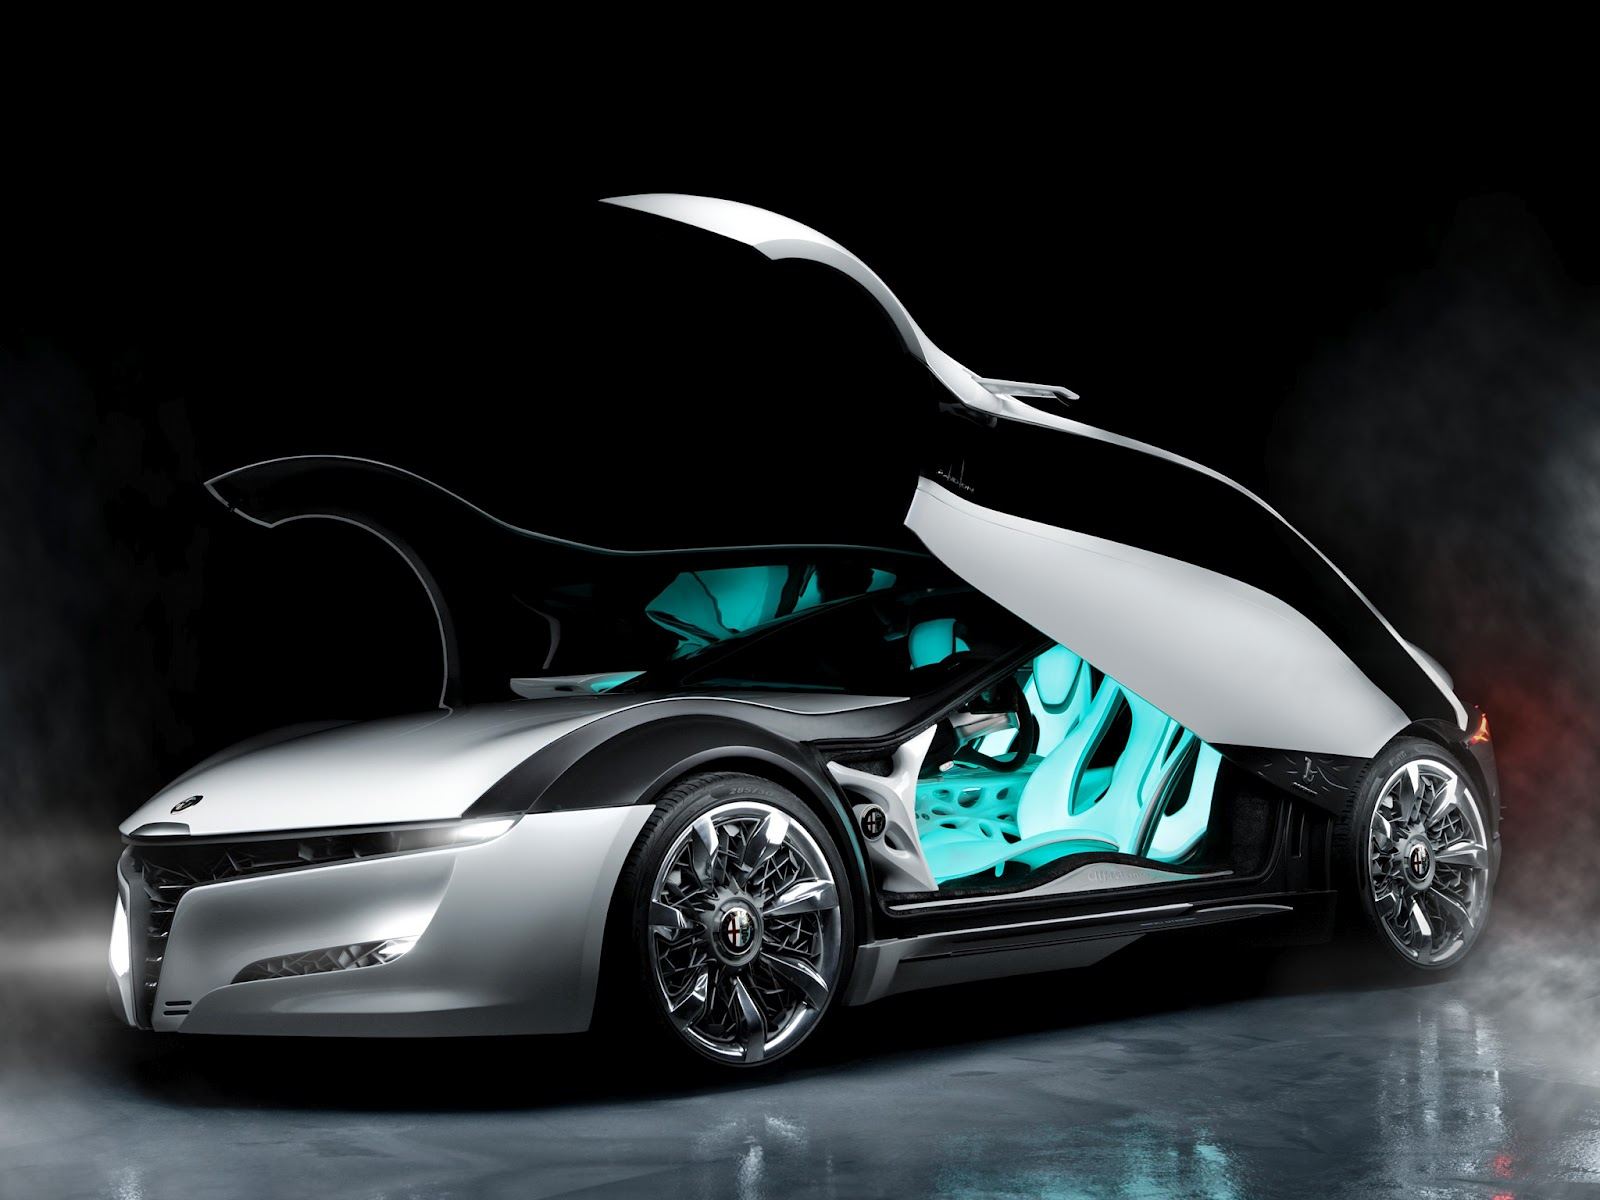 Alfa Romeo Pandion Doors Wide Open HD Wallpaper HD Car Wallpapers 1600x1200